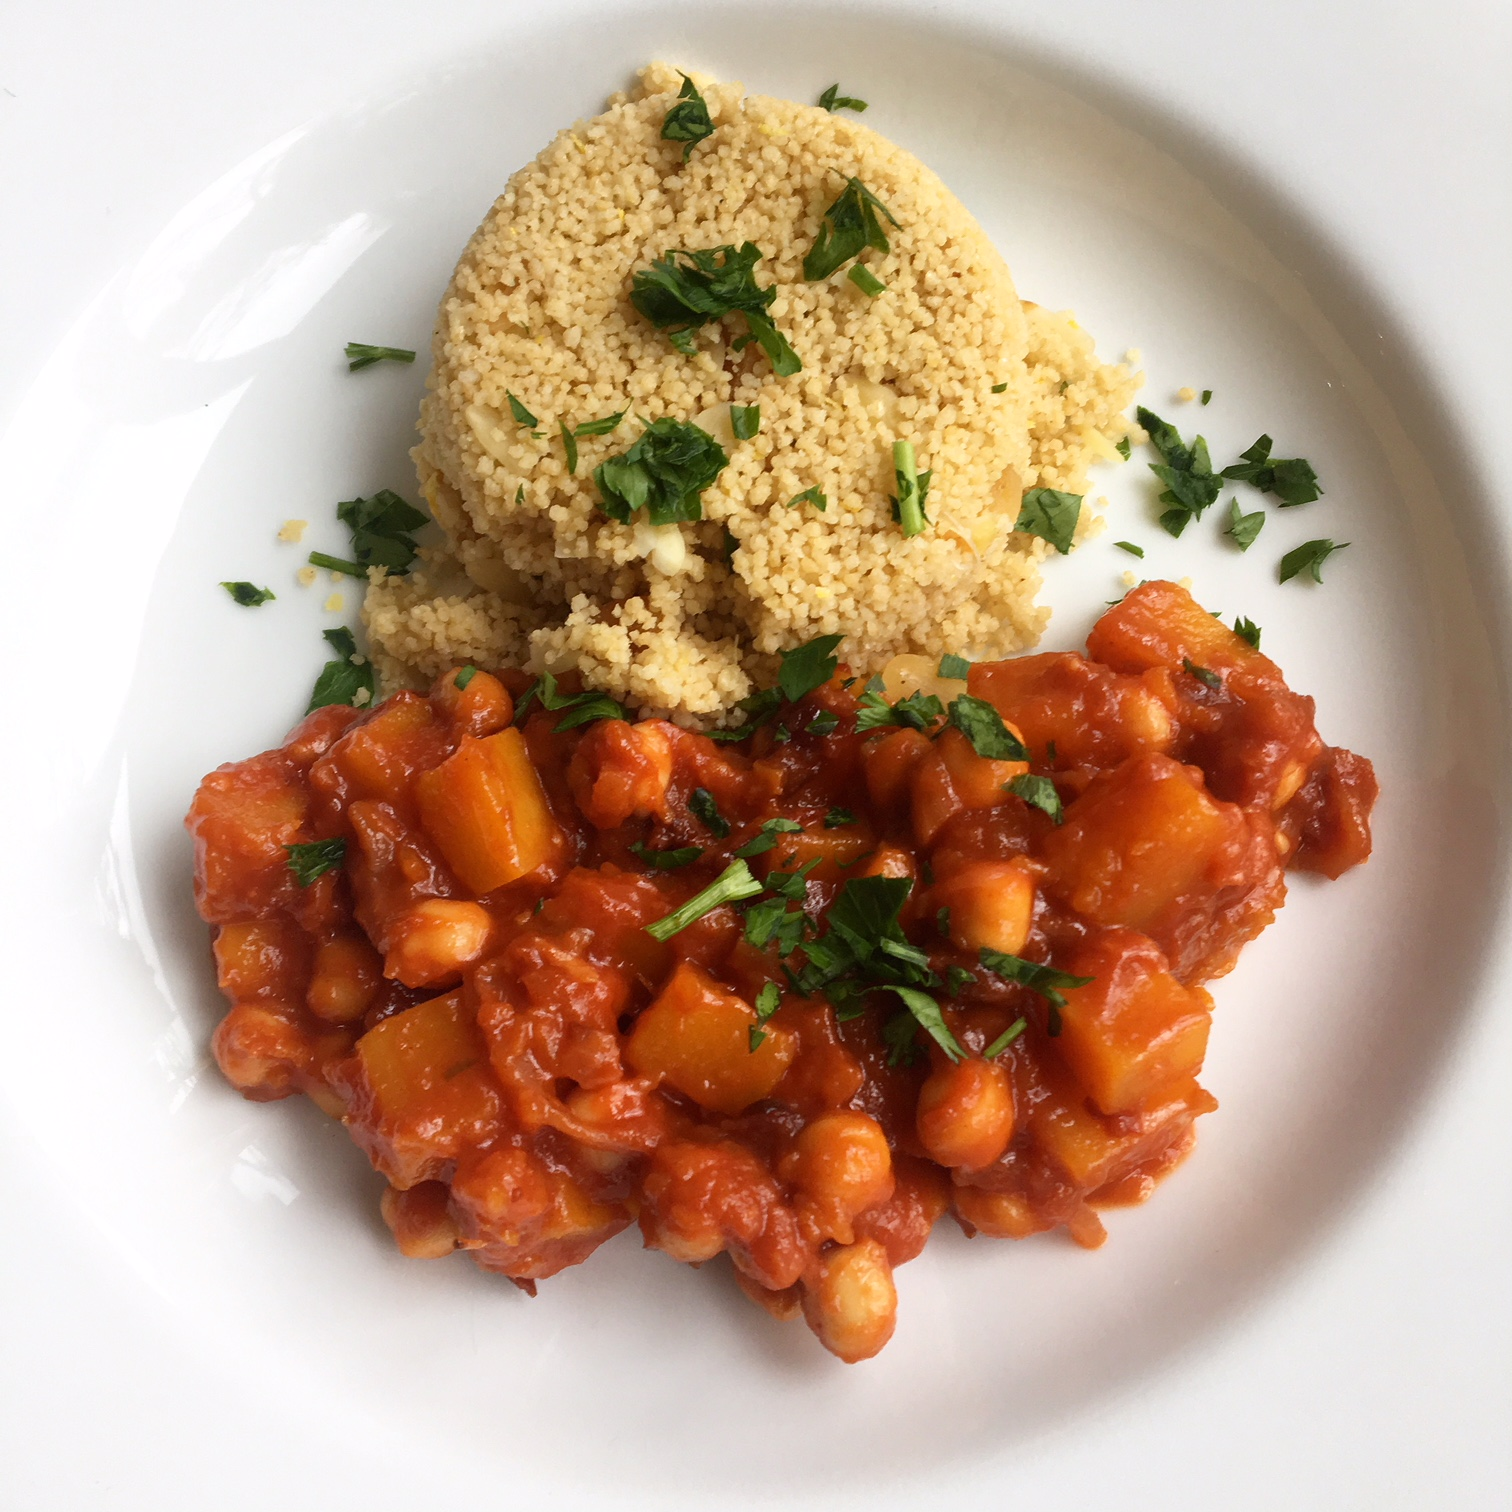 Chickpea and Squash Tagine